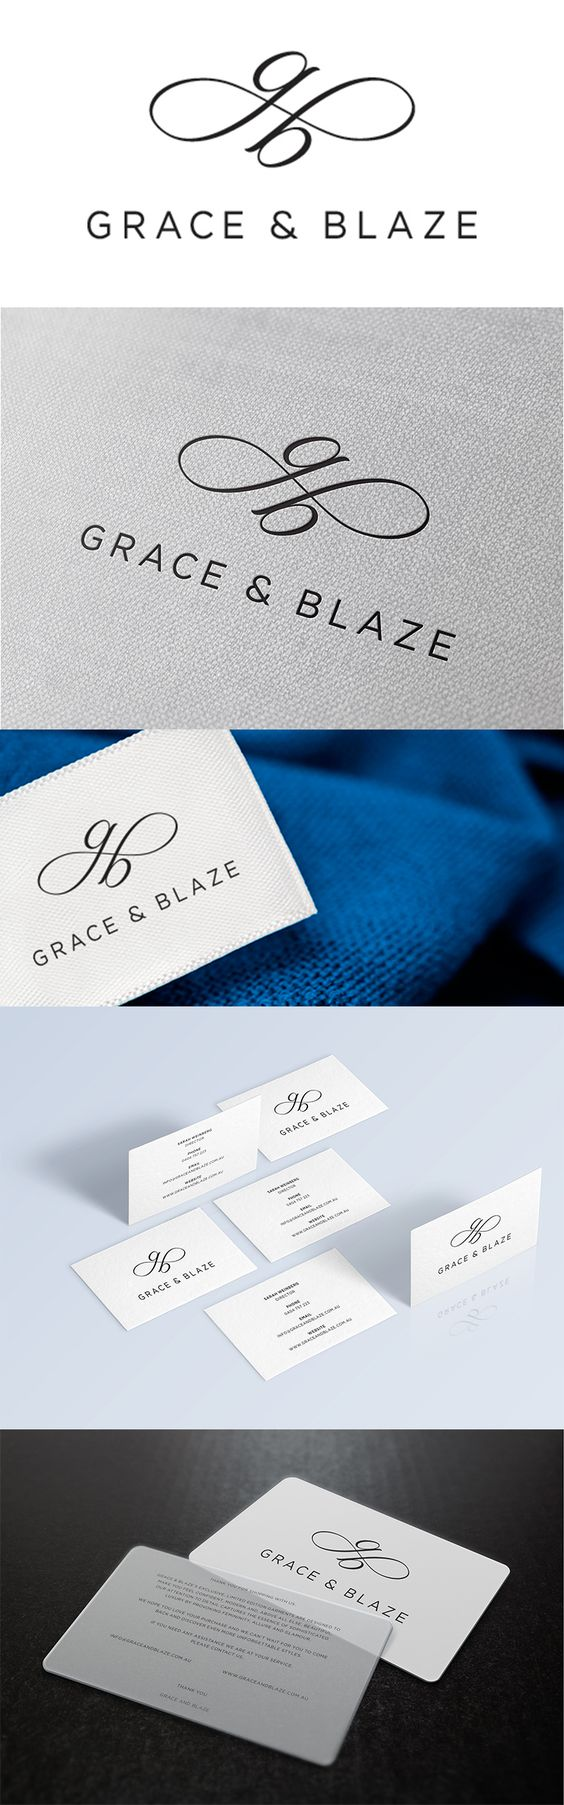 Grace & Blaze is one of Sydney's newest fashion labels. Made Agency created an elegant and unique brand identity that reflects the femininity and glamour of the brand.  graphic graphicdesign logo inspiration madeagency sydney fashion couture identity branding business